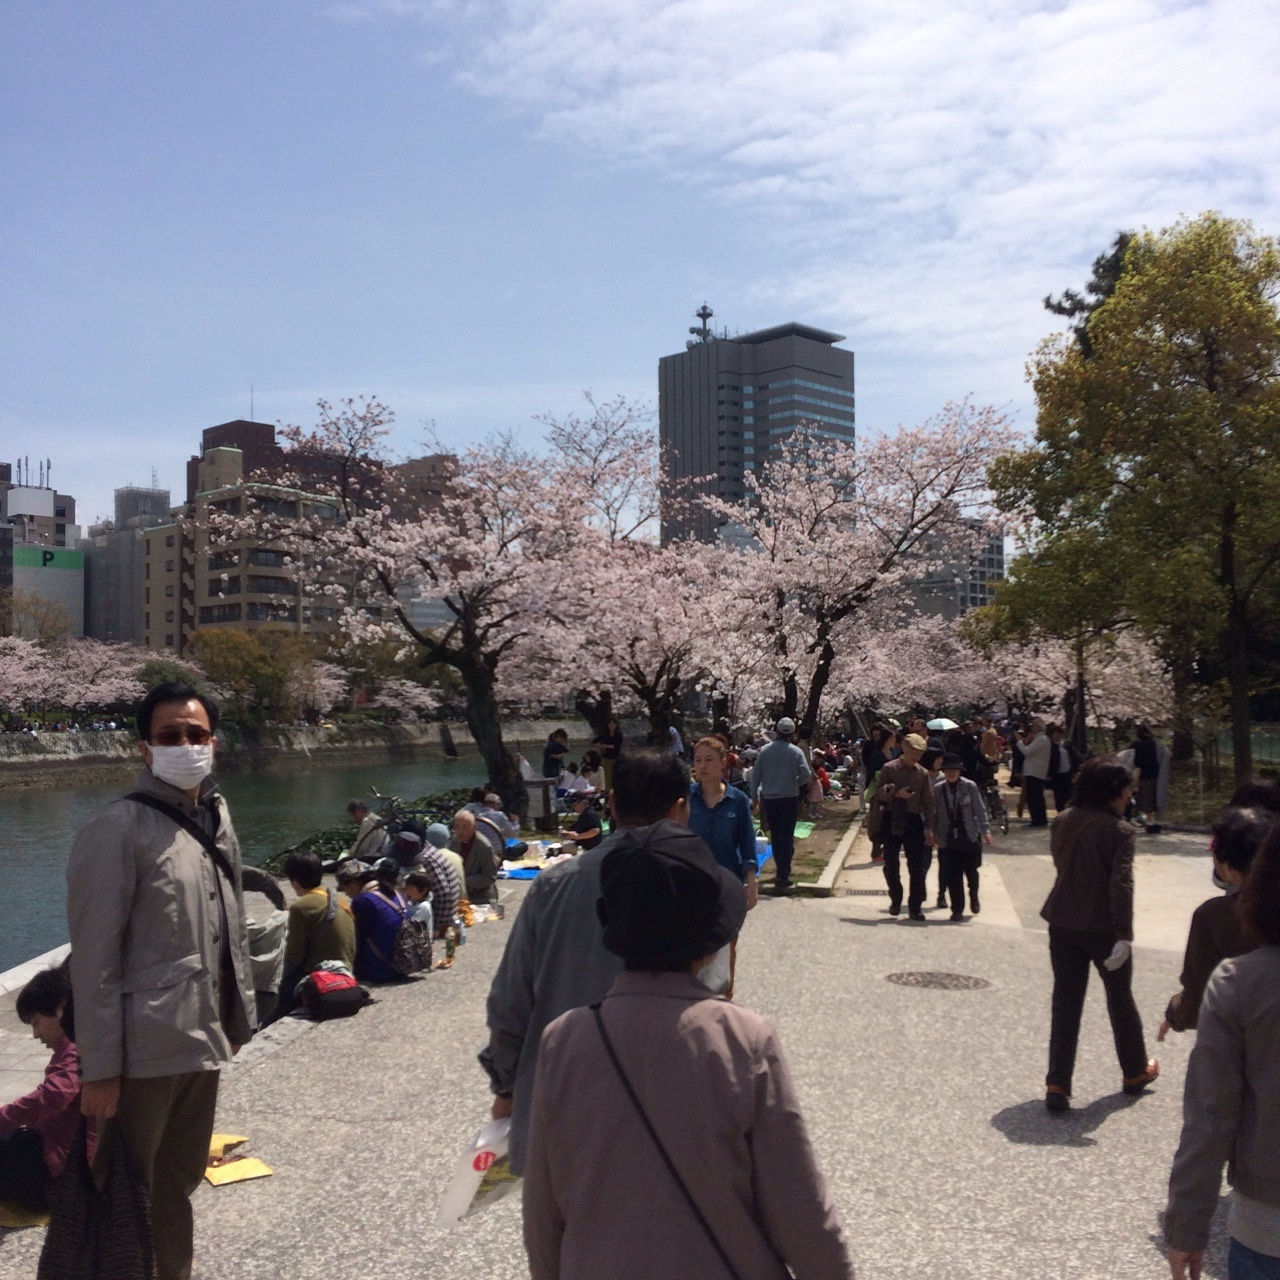 Can't get enough of the Hanami, or people in facemasks!